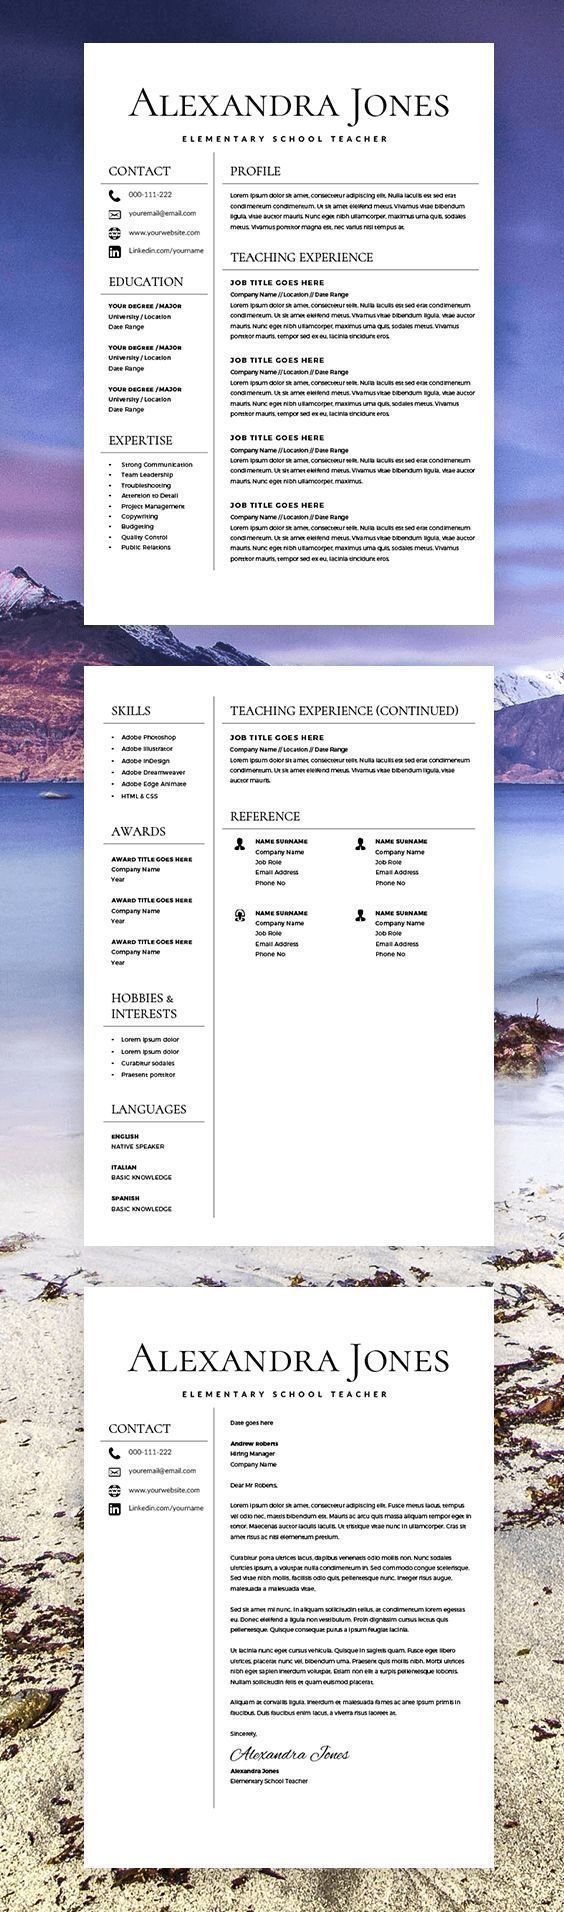 Teacher Resume - Teacher CV - CV Template - Free Cover Letter - MS Word - Educator Resume - Elementary Resume - Resume Teacher - Creative